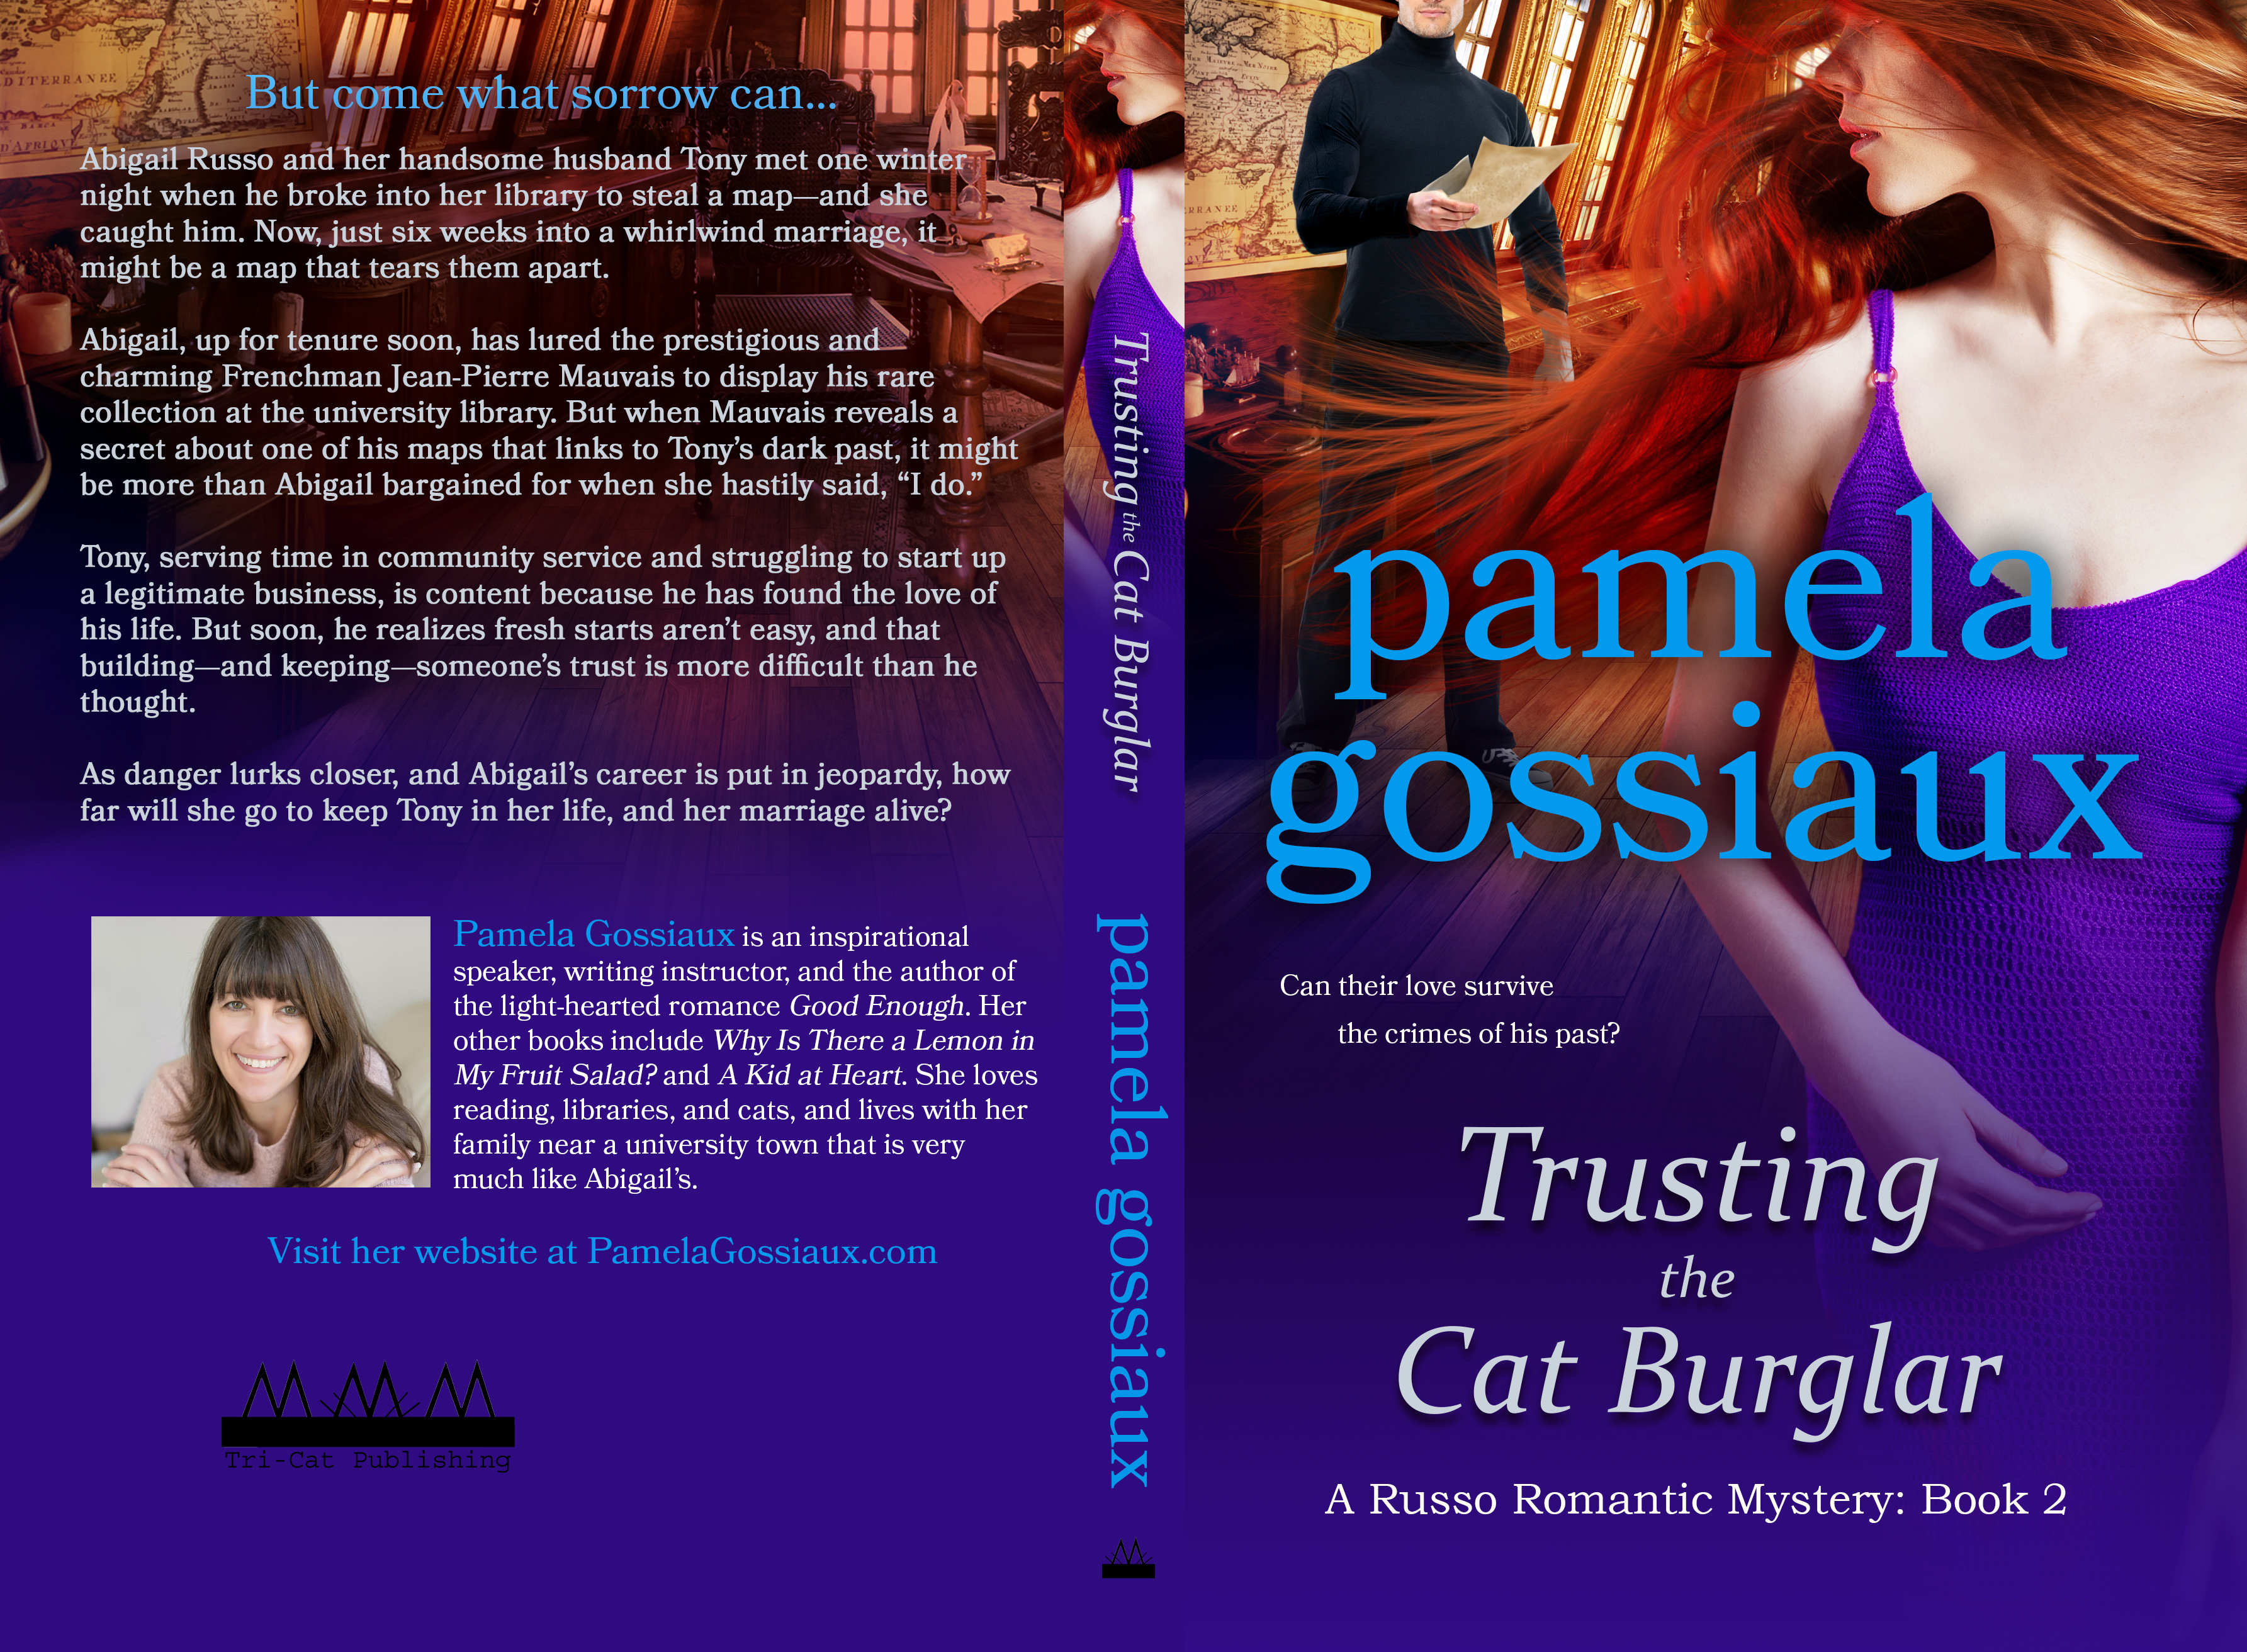 Trusting the Cat Burglar 5_5 x 8_5 at 254 pages